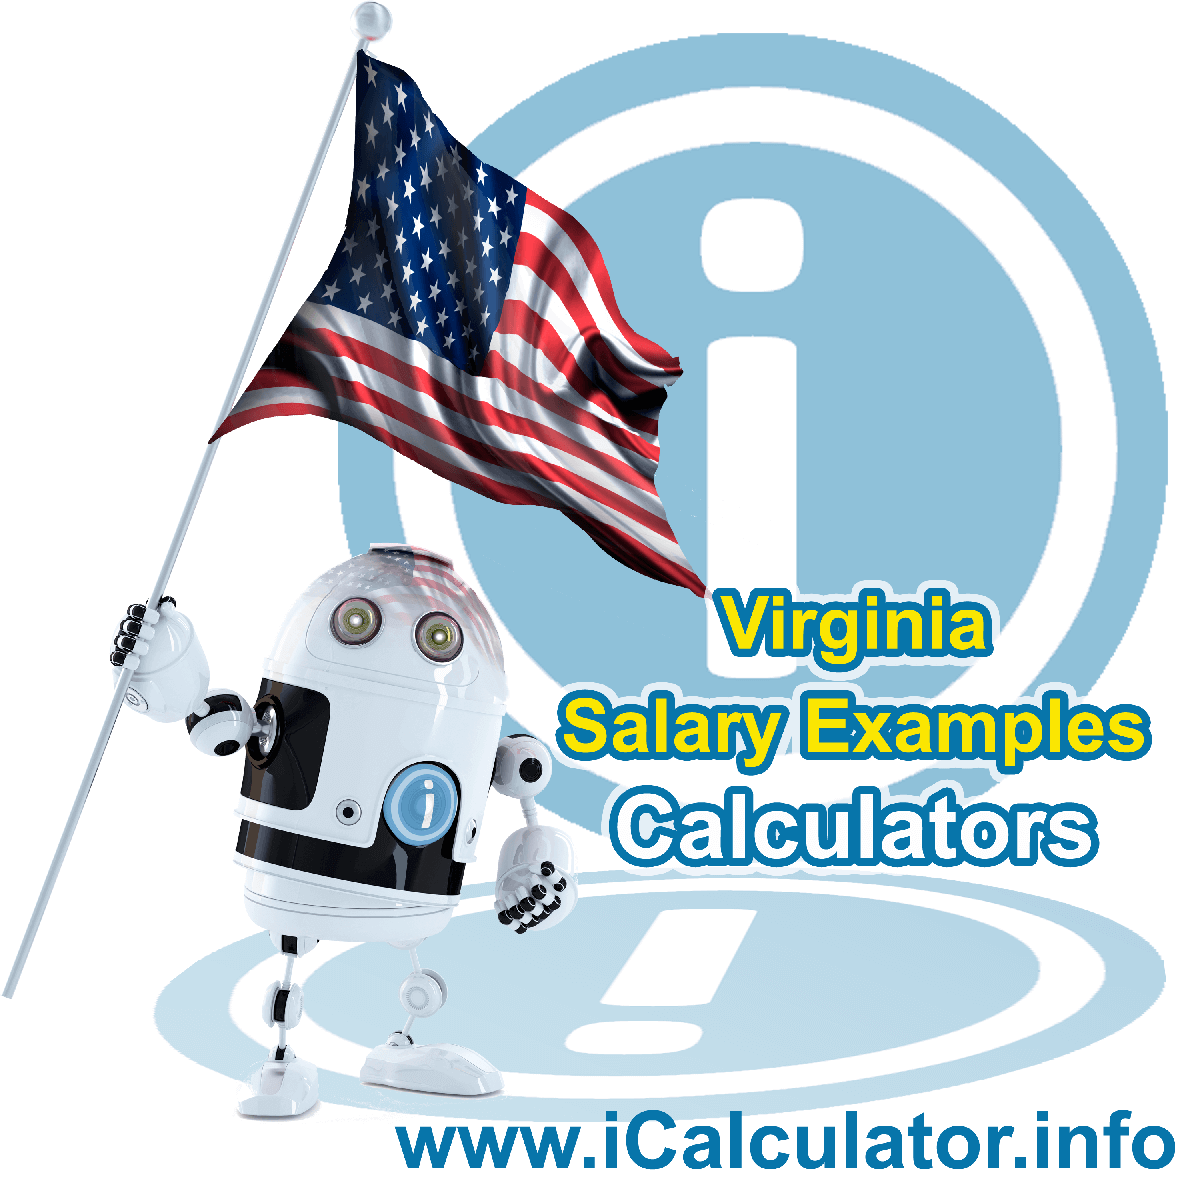 Virginia Salary Example for $75,000.00 in 2021 | iCalculator | $75,000.00 salary example for employee and employer paying Virginia State tincome taxes. Detailed salary after tax calculation including Virginia State Tax, Federal State Tax, Medicare Deductions, Social Security, Capital Gains and other income tax and salary deductions complete with supporting Virginia state tax tables